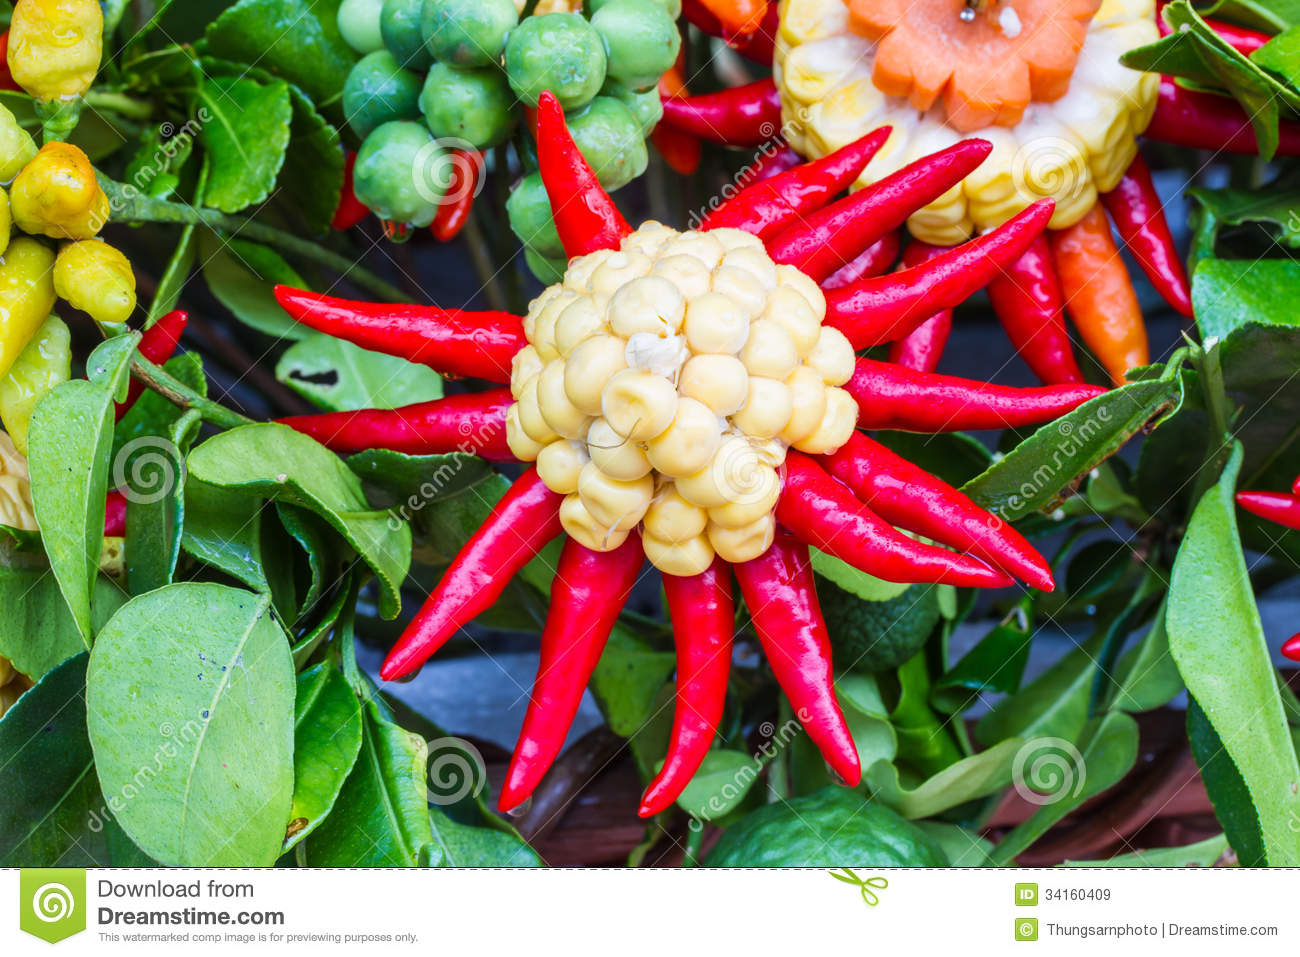 Vegetables Arranged As Flowers Royalty Free Stock Images